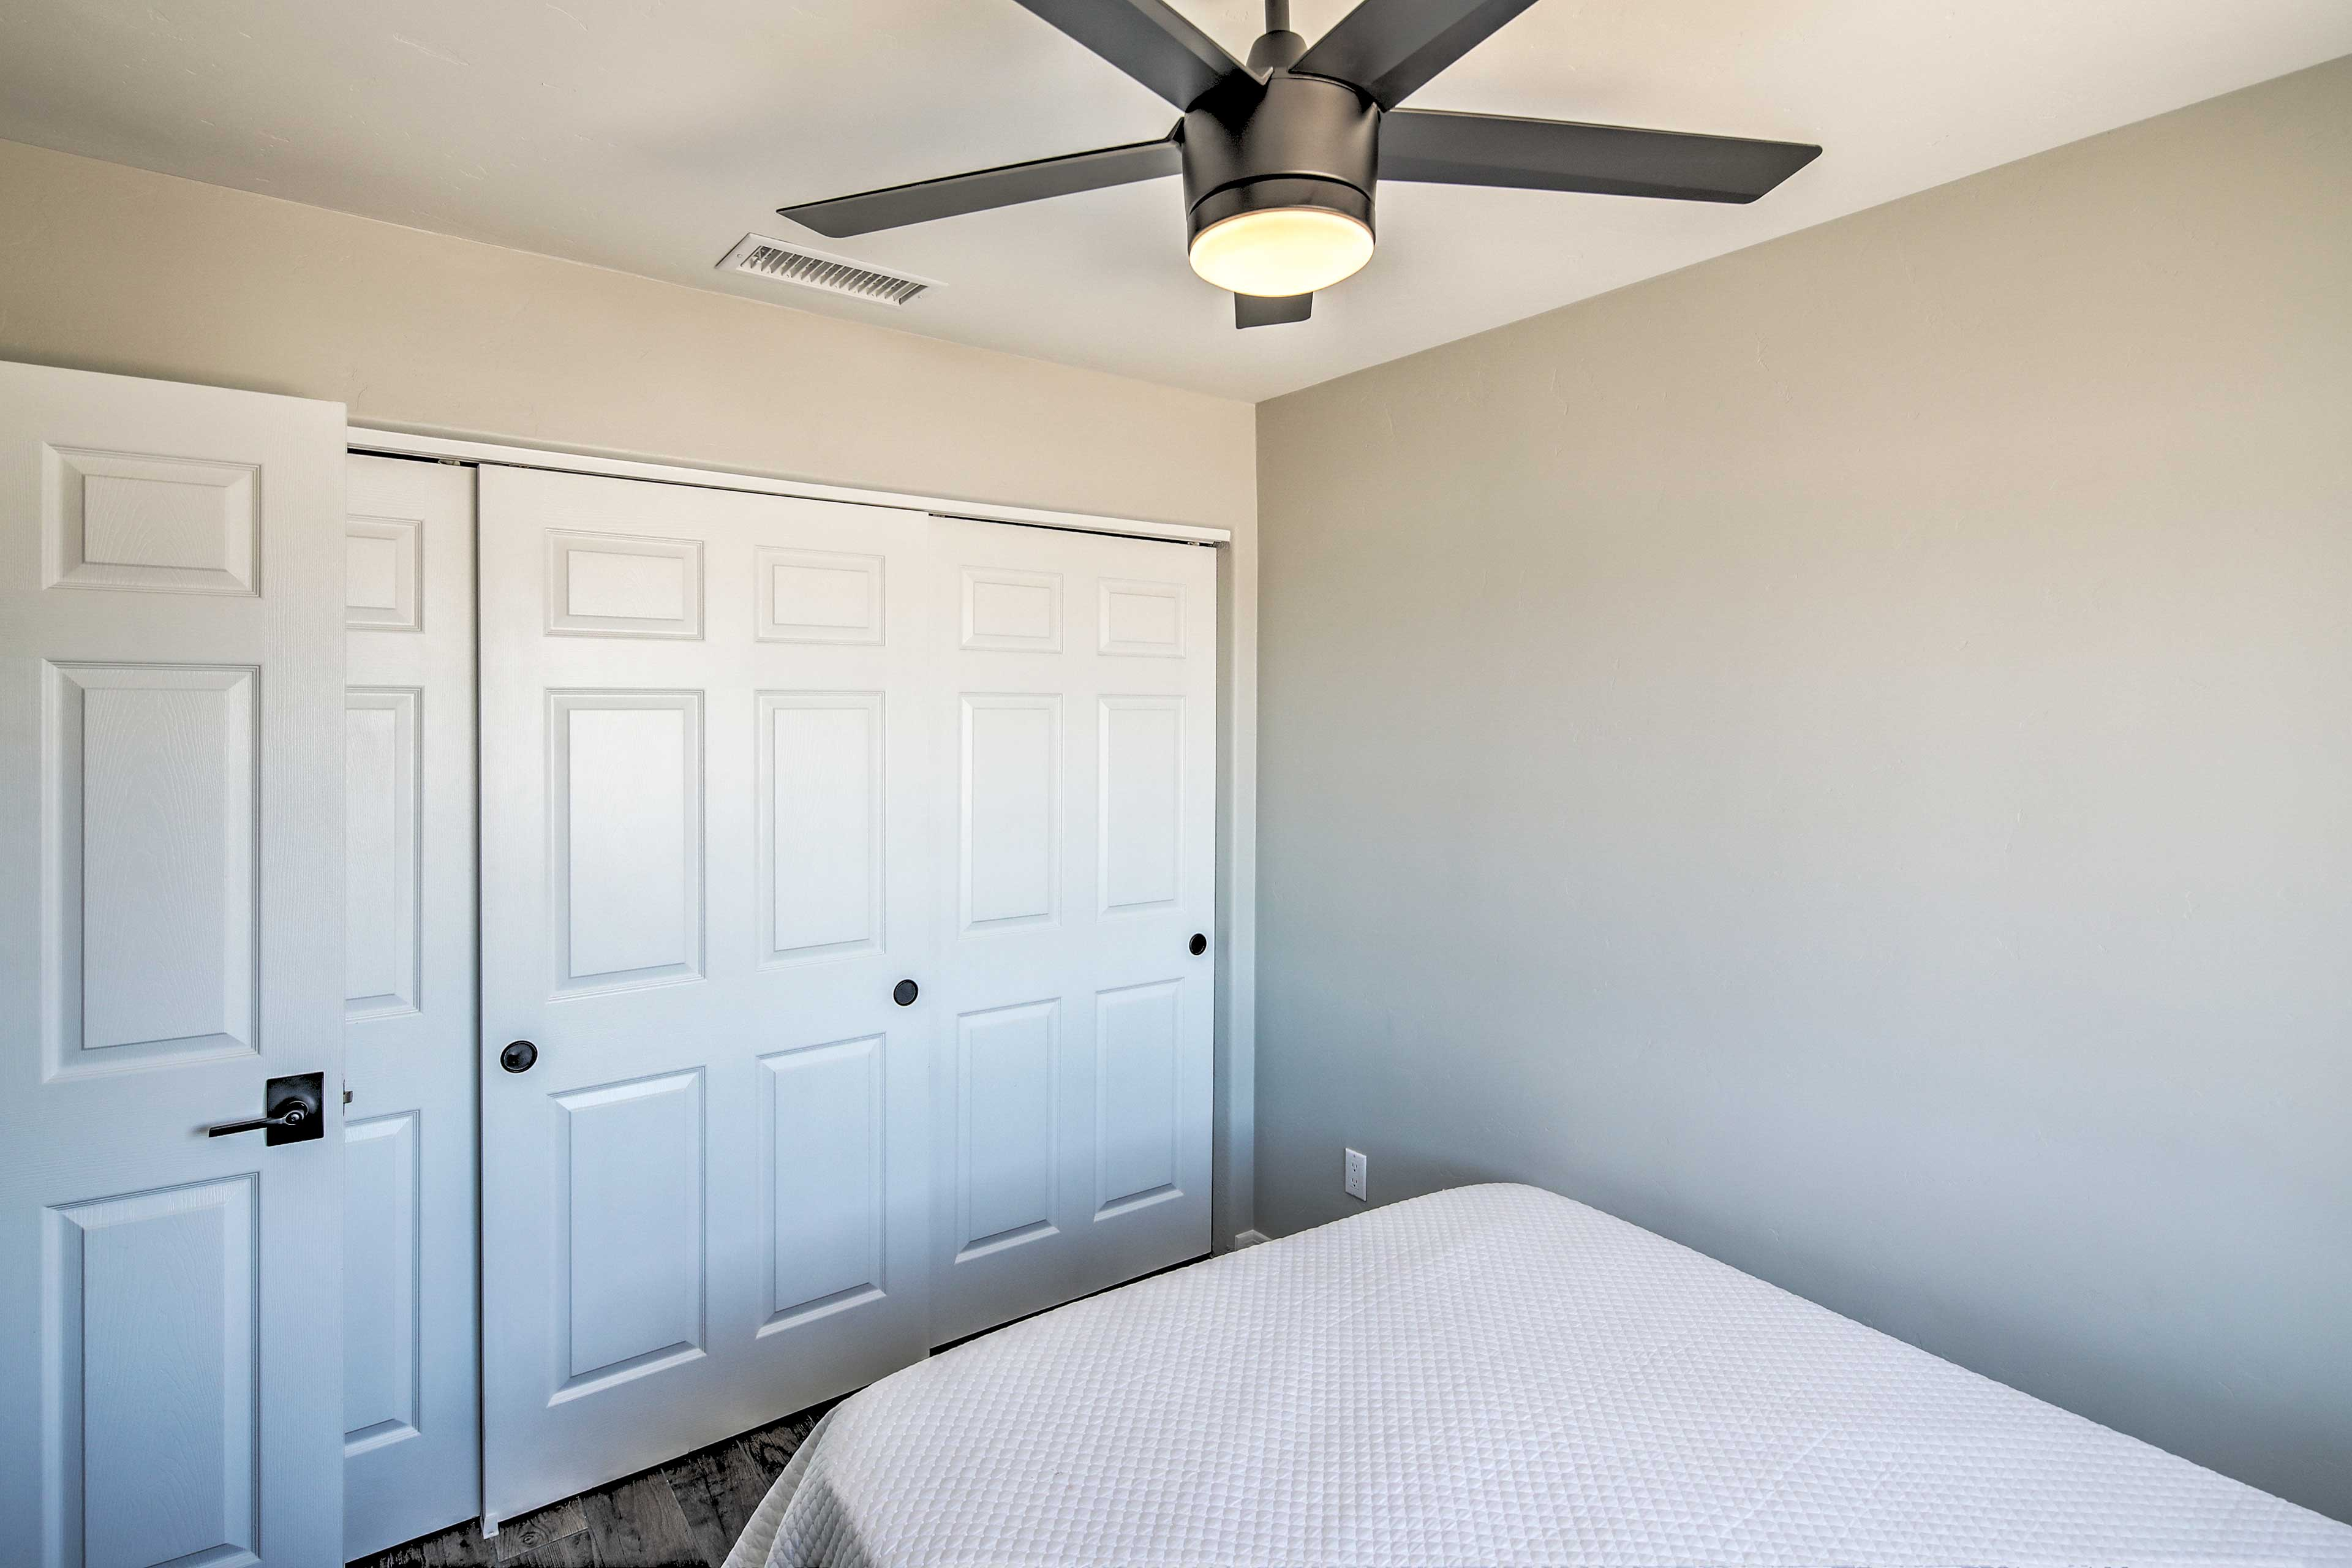 The room is complete with a ceiling fan and spacious closet.